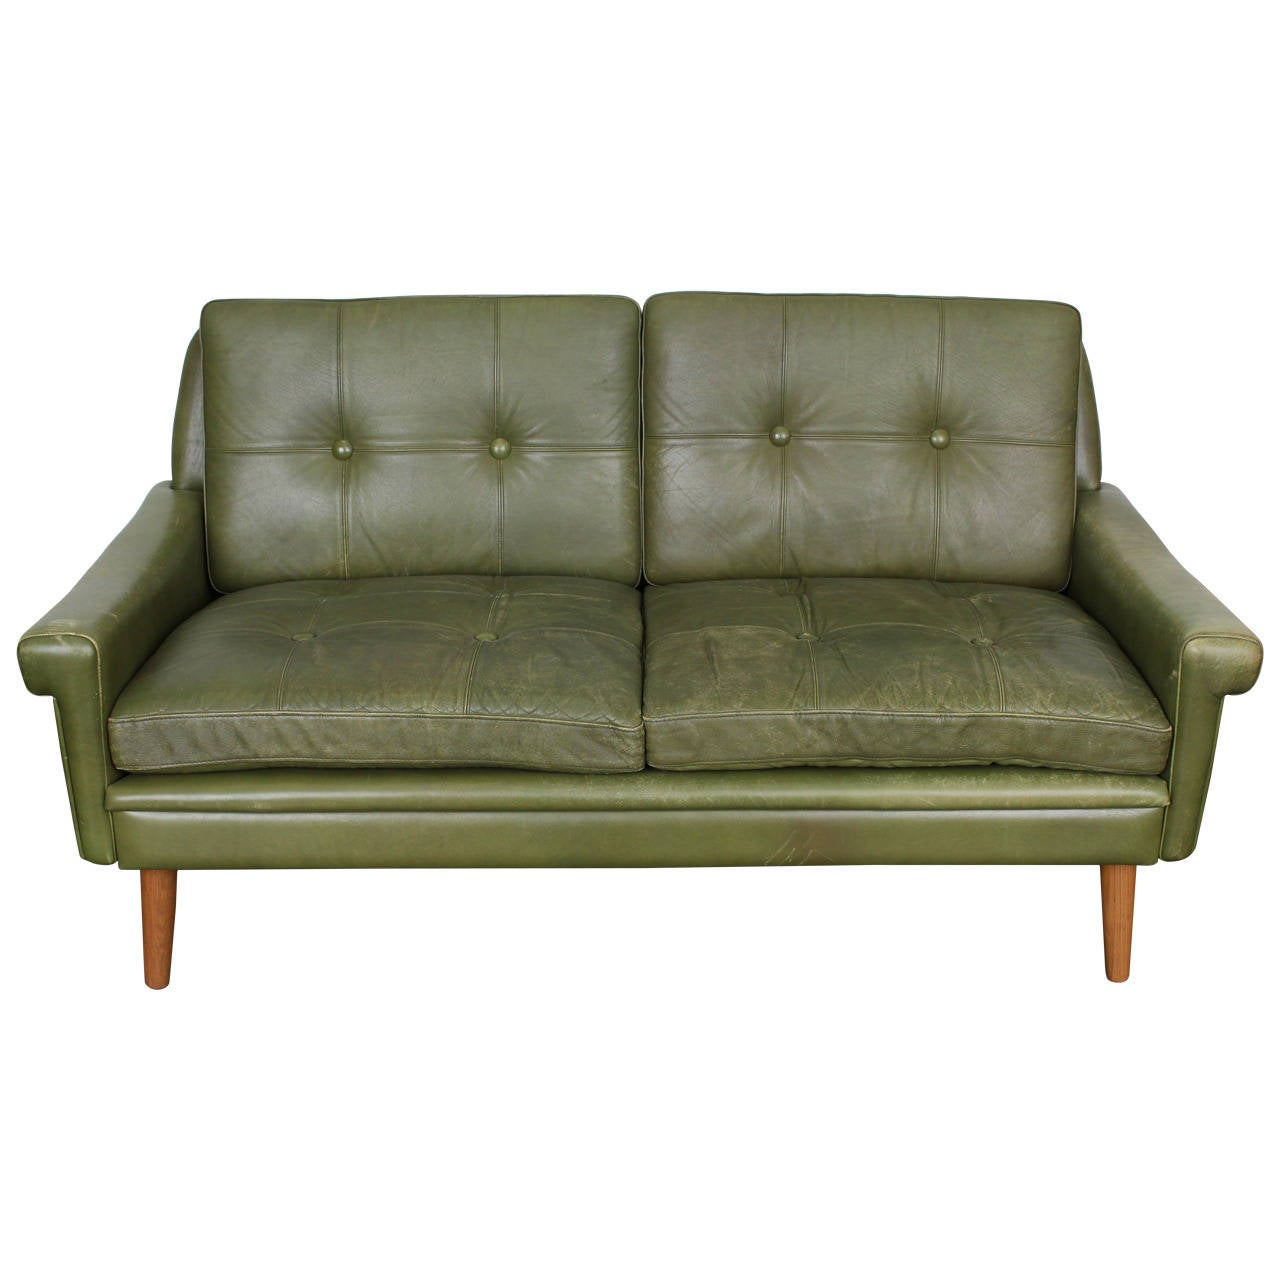 Mid Century Modern Green Leather Loveseat By Skippers Mobler At 1stdibs